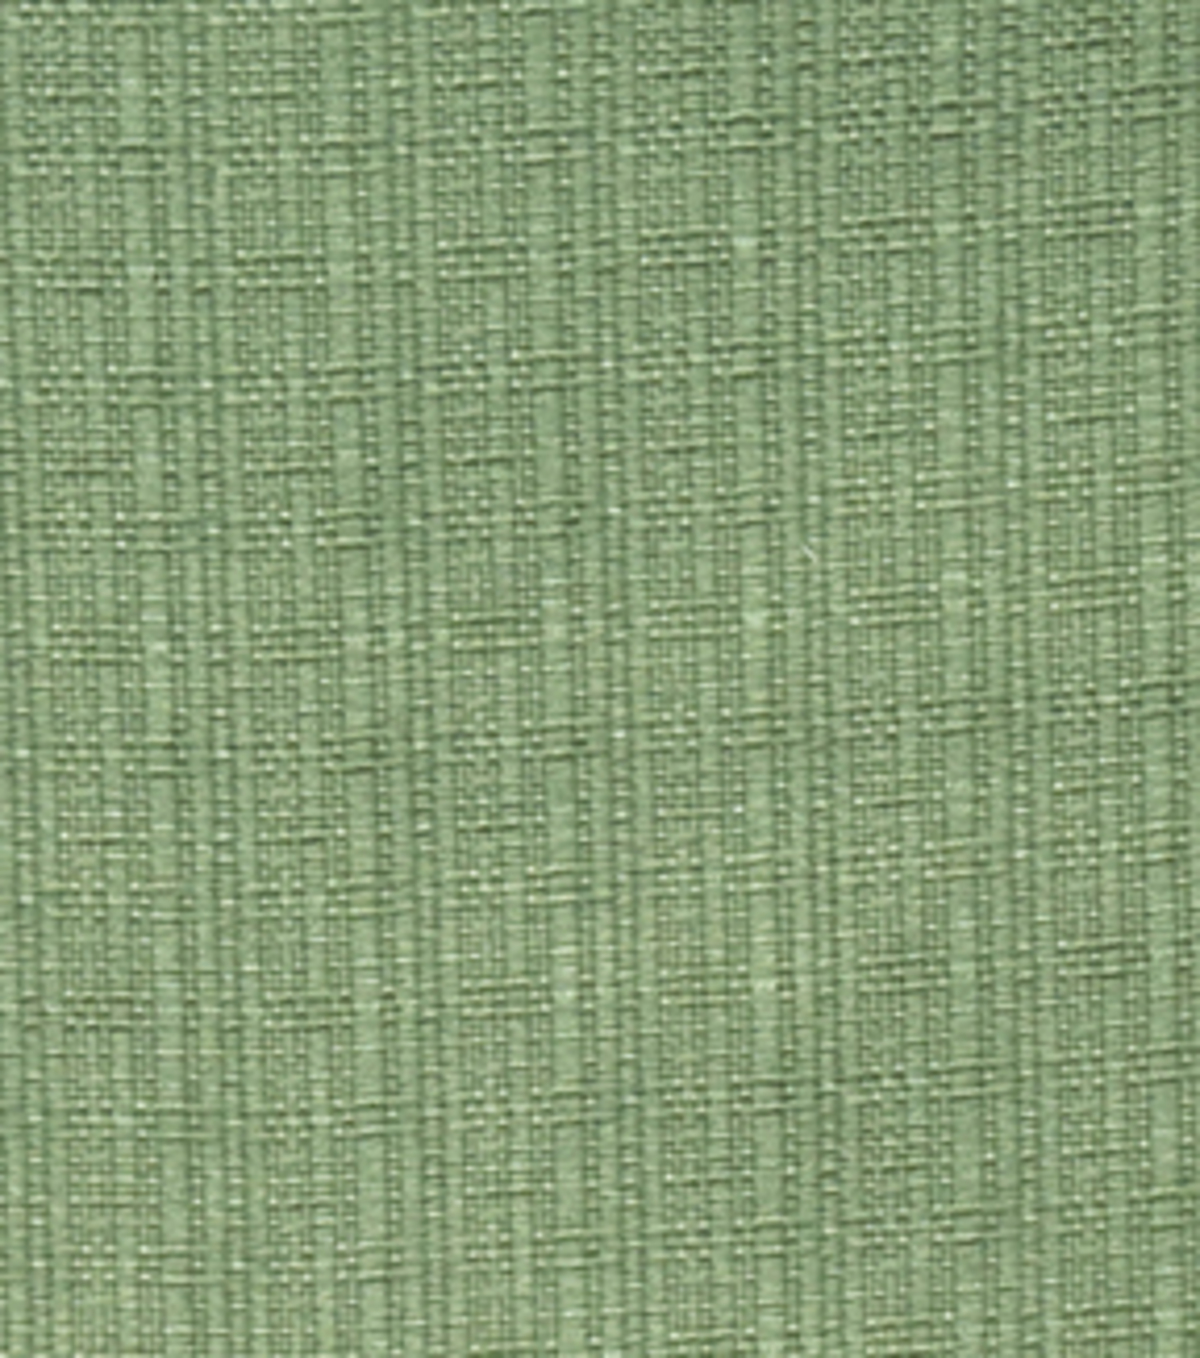 8''x8'' Home Decor Fabric Swatch-Solid Fabric Eaton Square Enterprise Fern